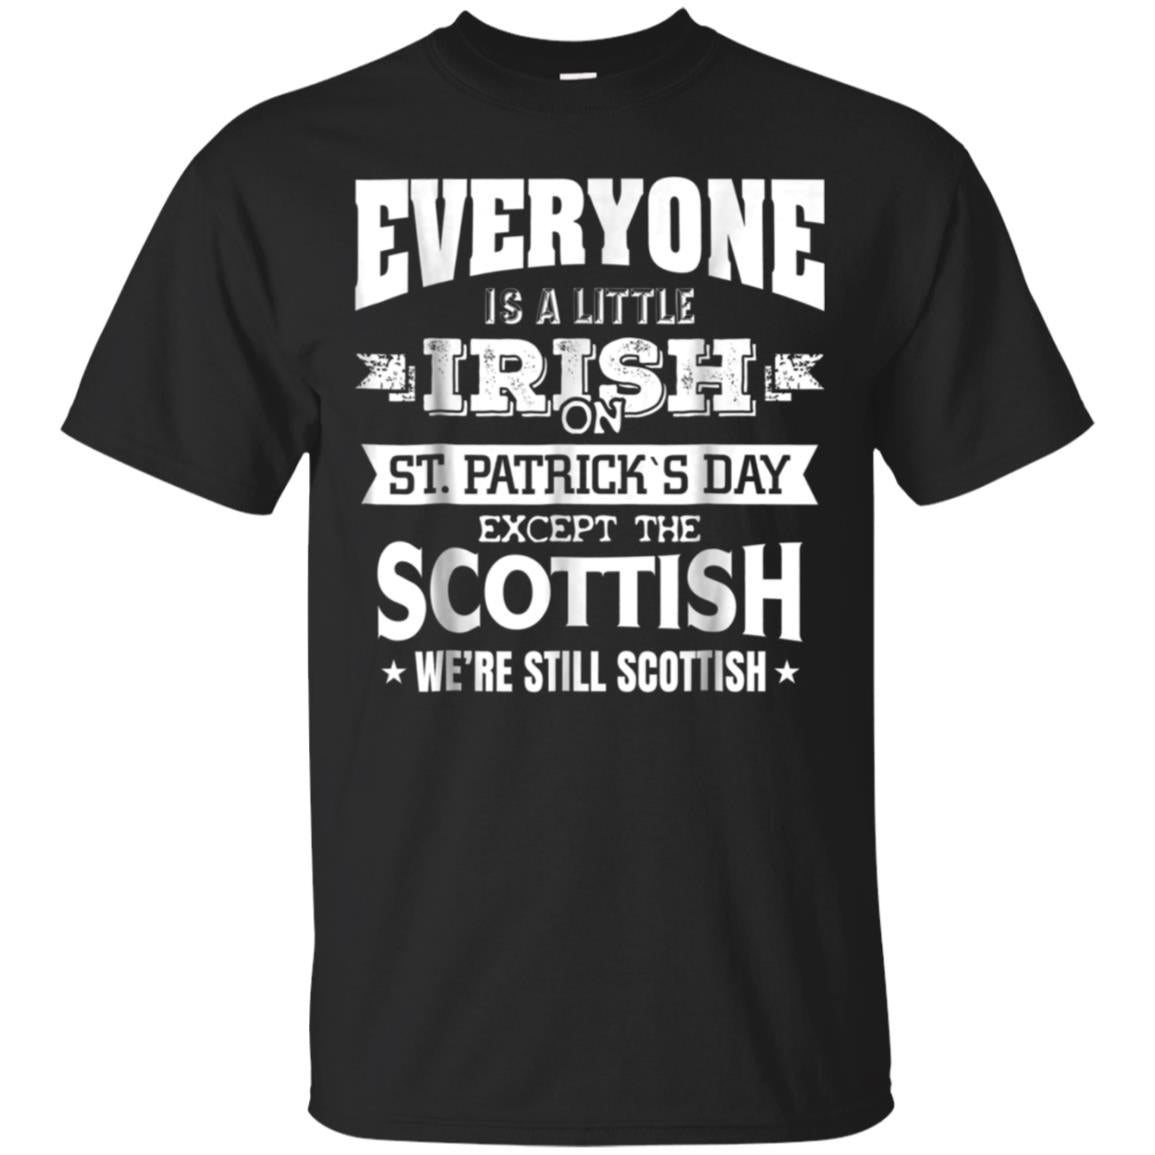 Everyone is little Irish on St. Patrick's day except Scottis 99promocode